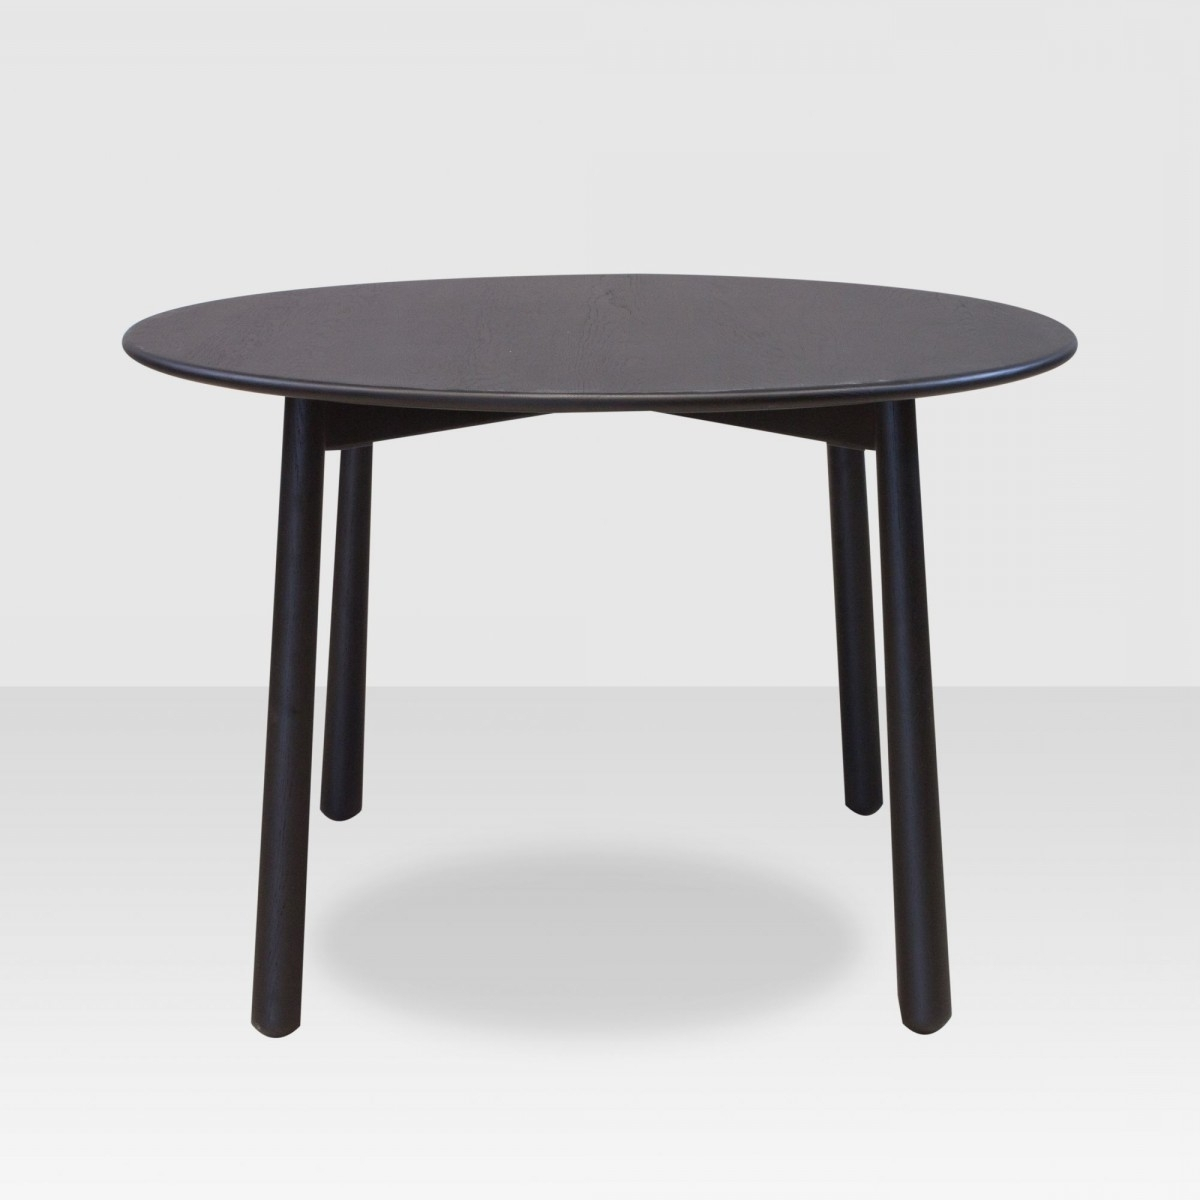 Nora Dining Tables Throughout Most Up To Date Nora Dining Table – Elte Market (View 2 of 25)